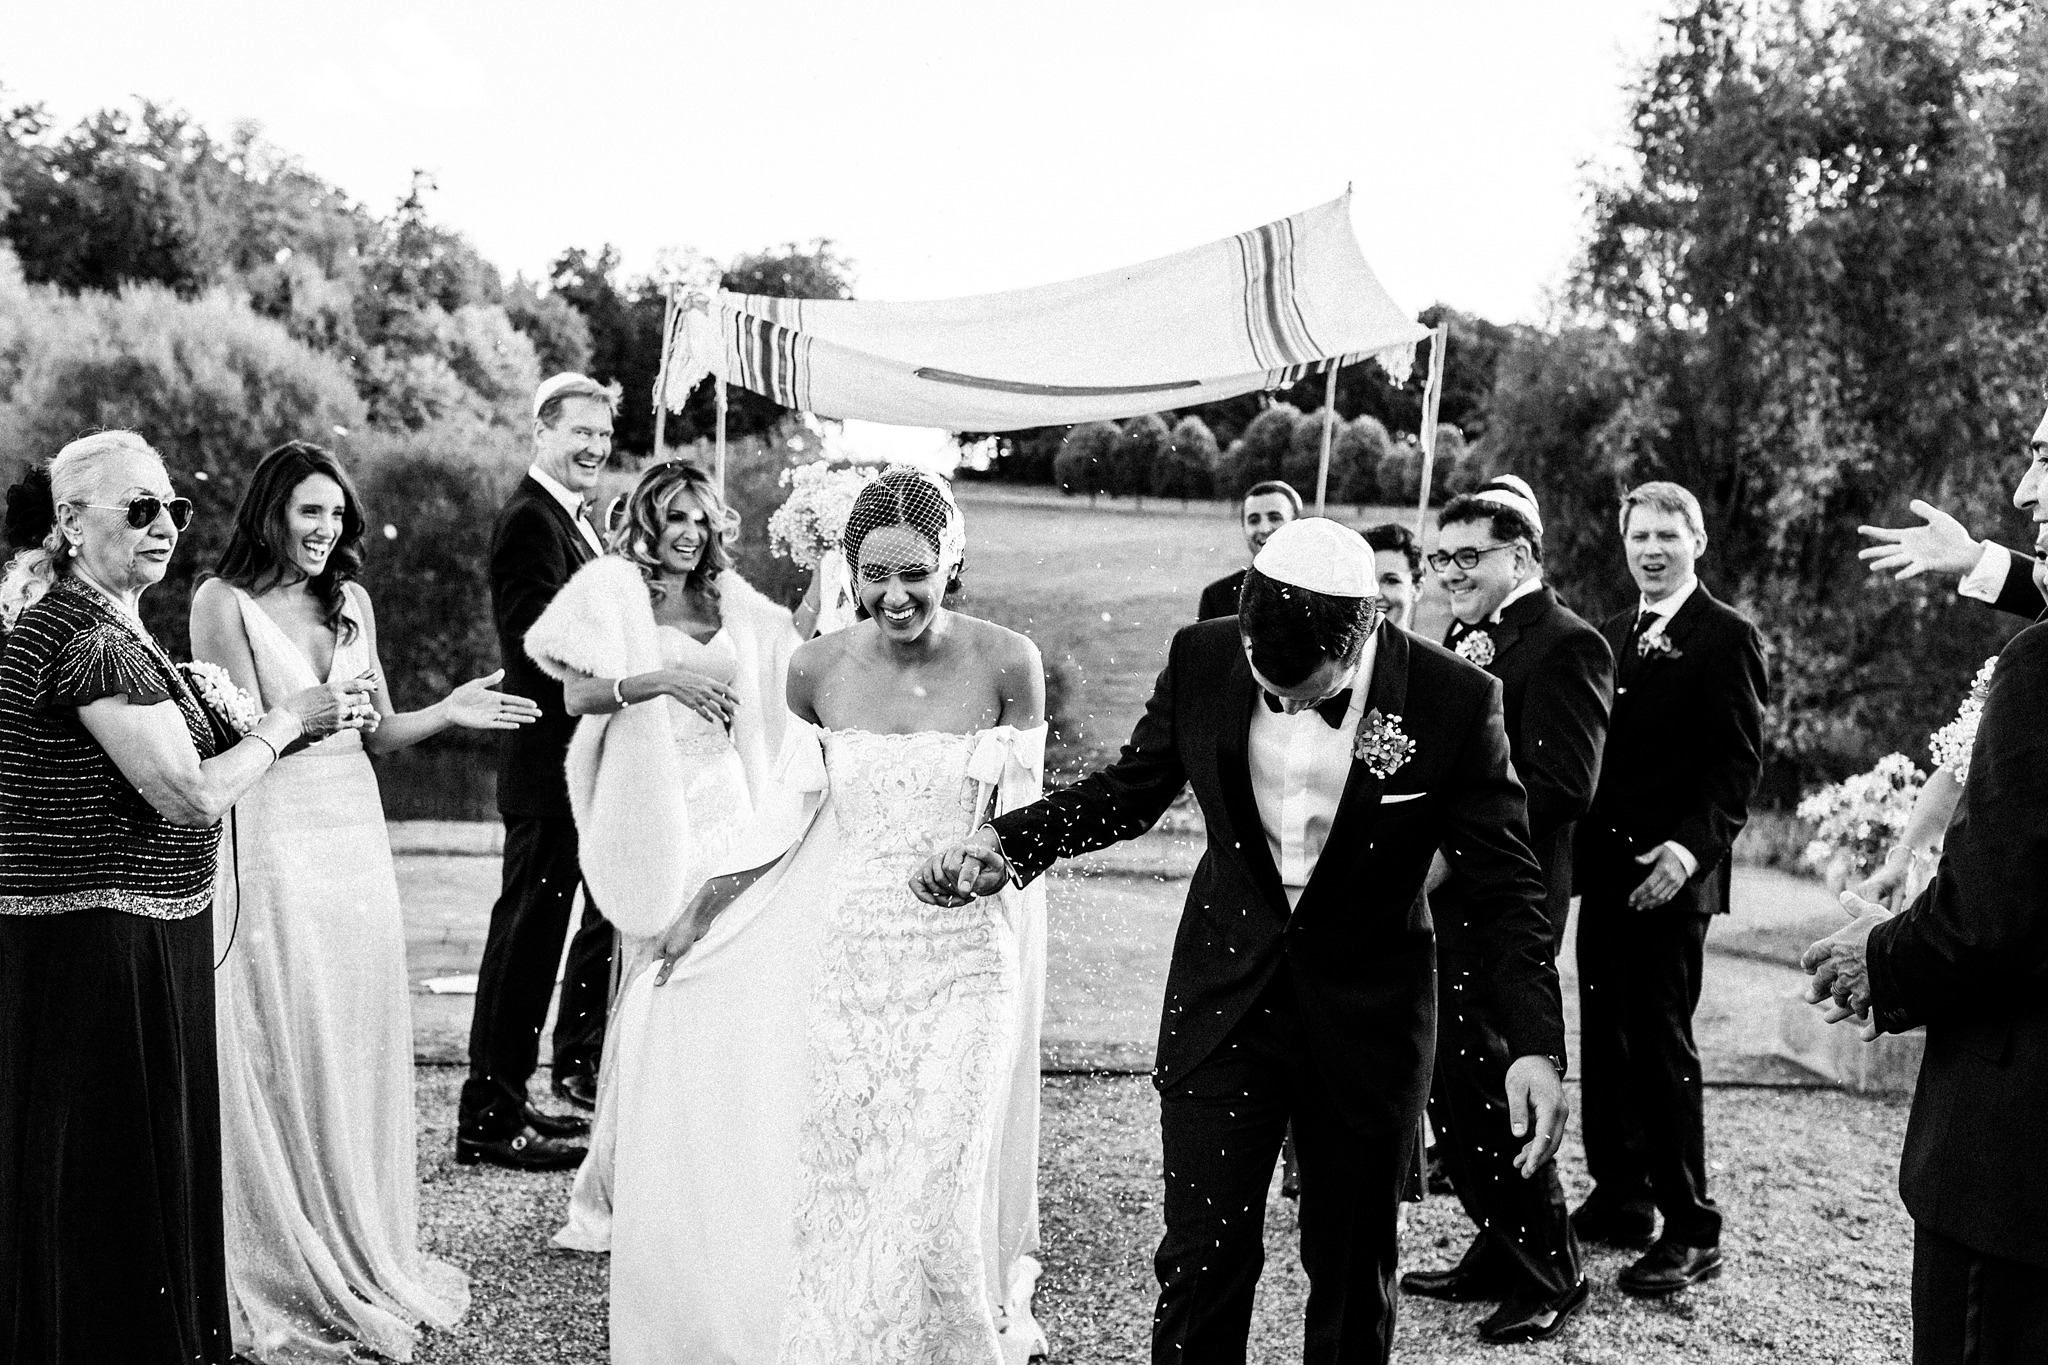 chateau-wedding-france-chanel-eric-as-seen-on-vogue-with-sarah-falugo-photographer_0099